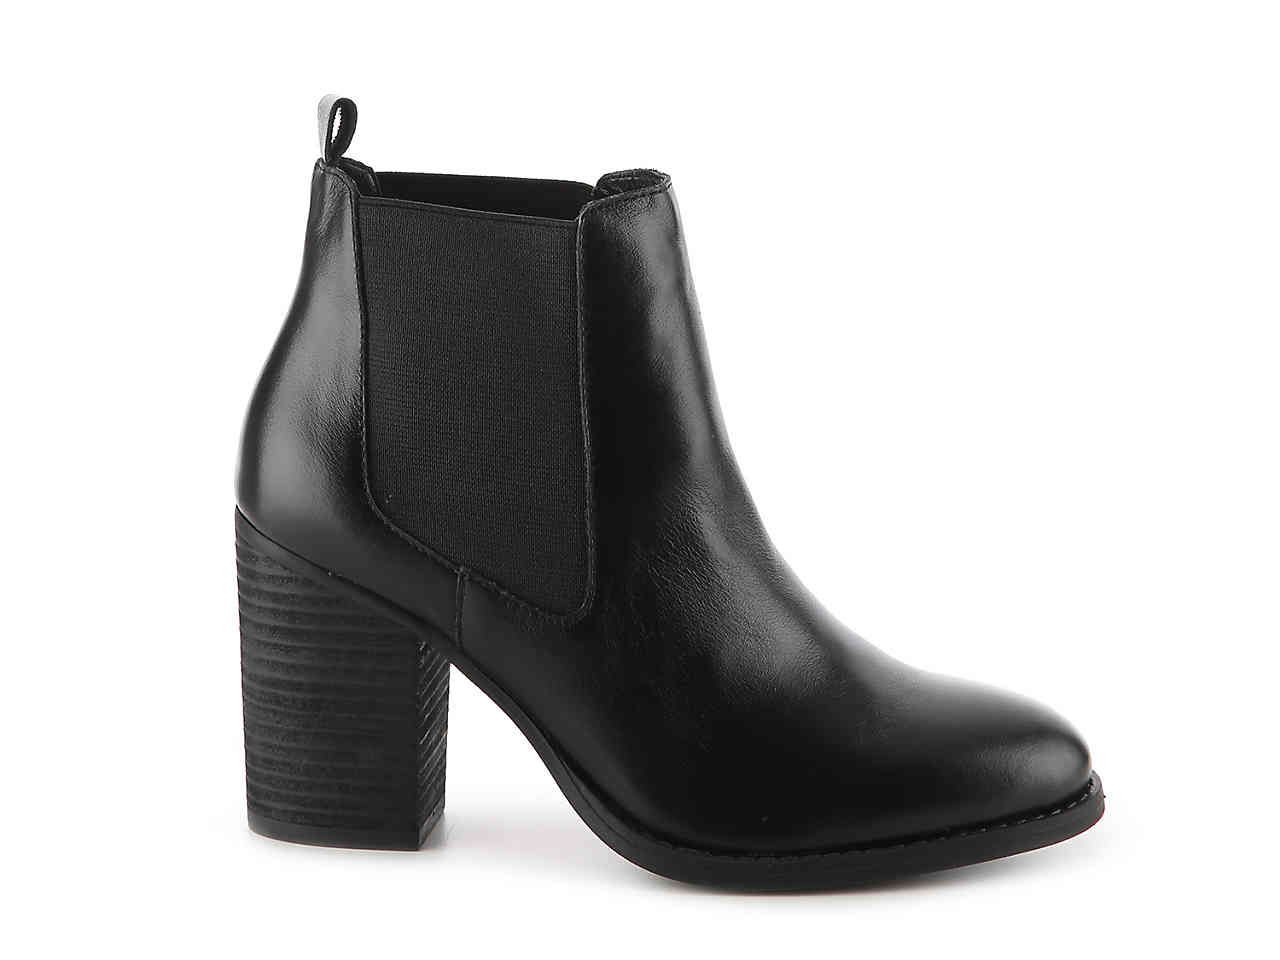 Shoes, Boots, Sandals, Handbags, Free Shipping!